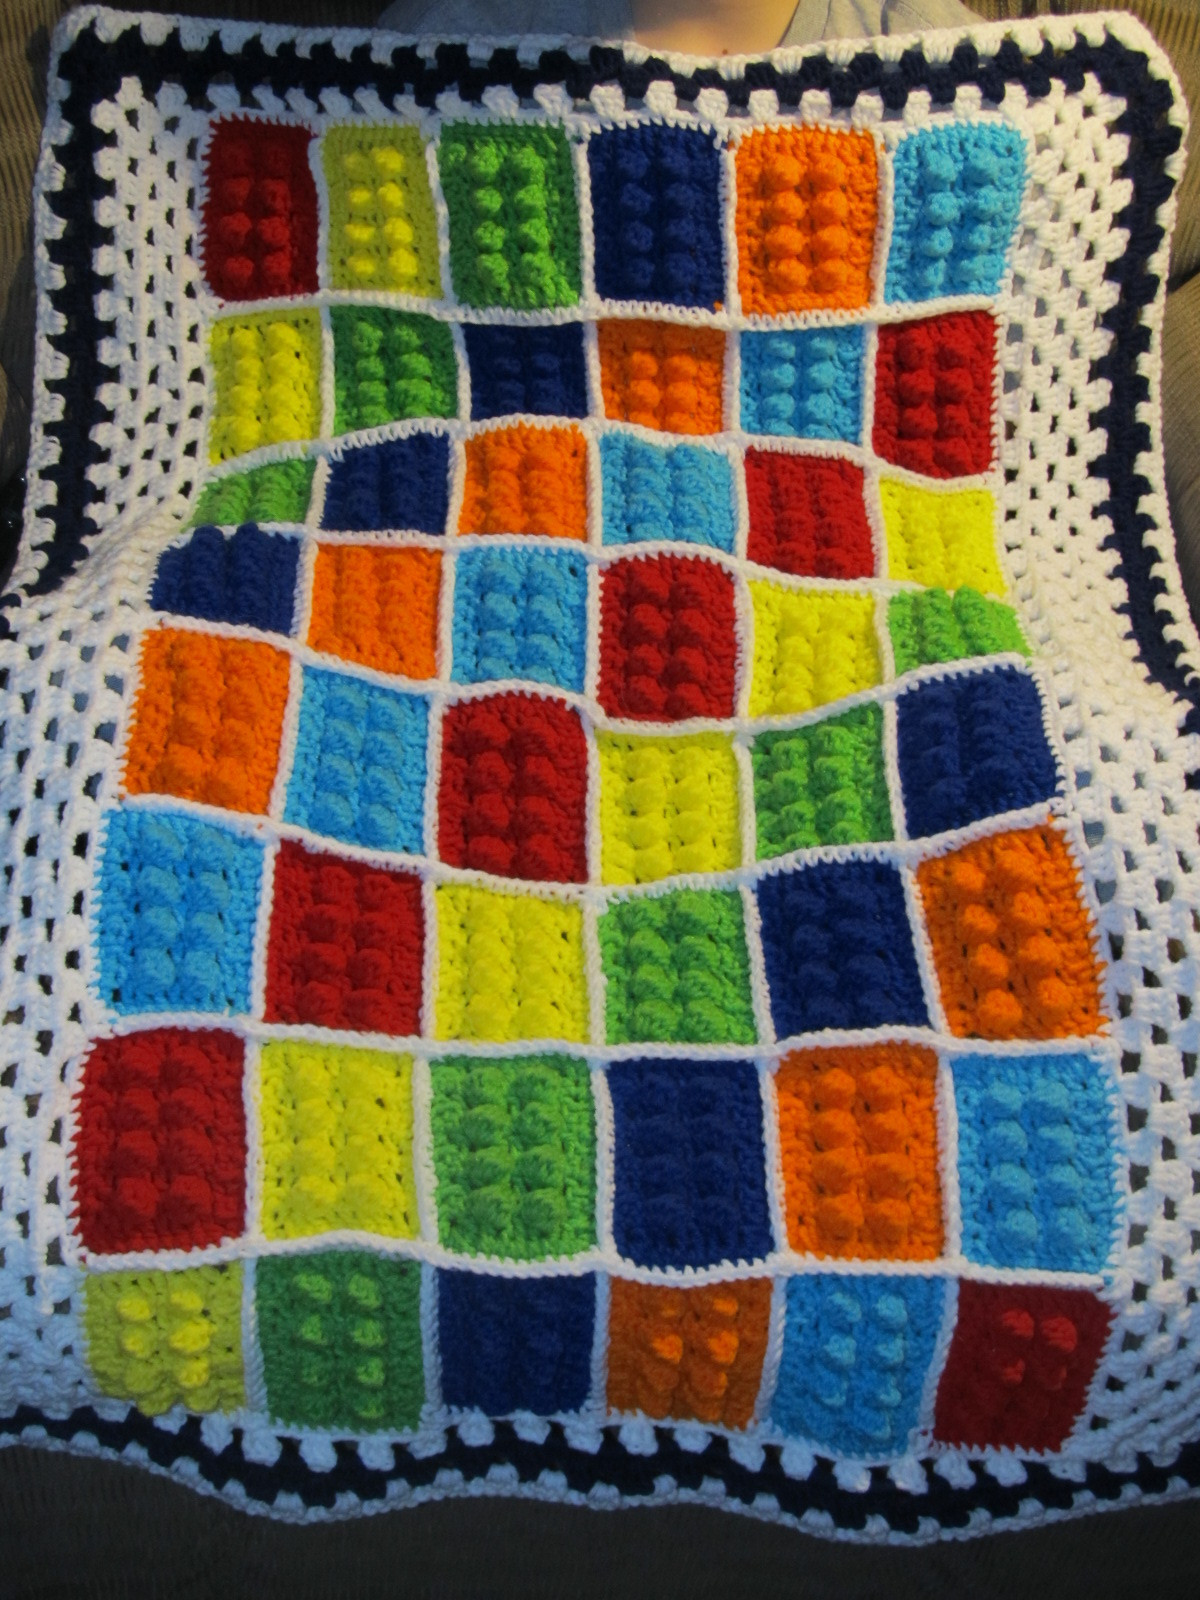 Crochet Quilts Inspirational Simply Crochet and Other Crafts Lego Blanket Of Unique 45 Pics Crochet Quilts